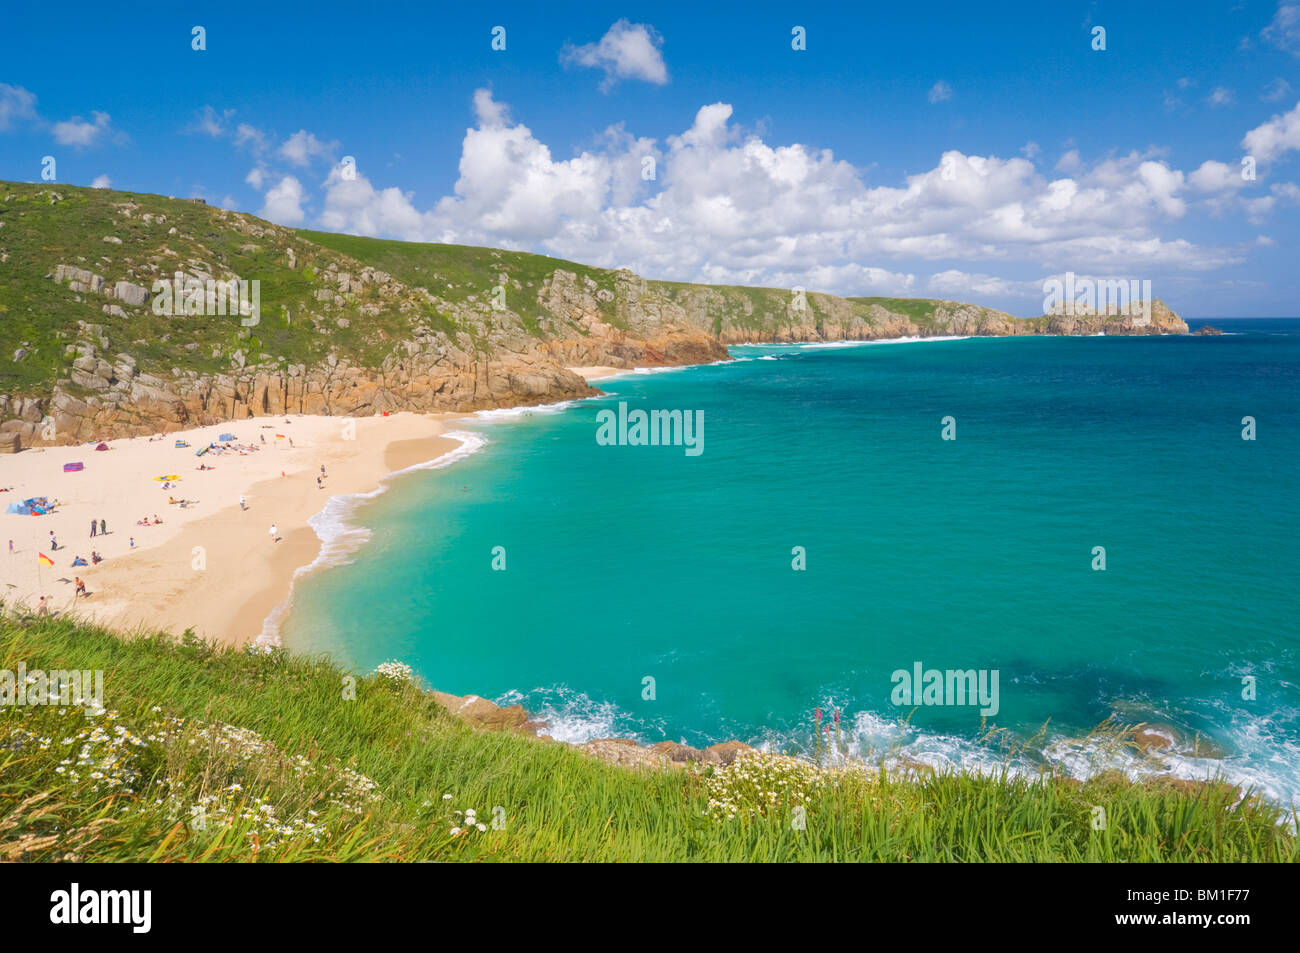 Holidaymakers and tourists sunbathing on Porthcurno beach, Cornwall, England, United Kingdom, Europe - Stock Image